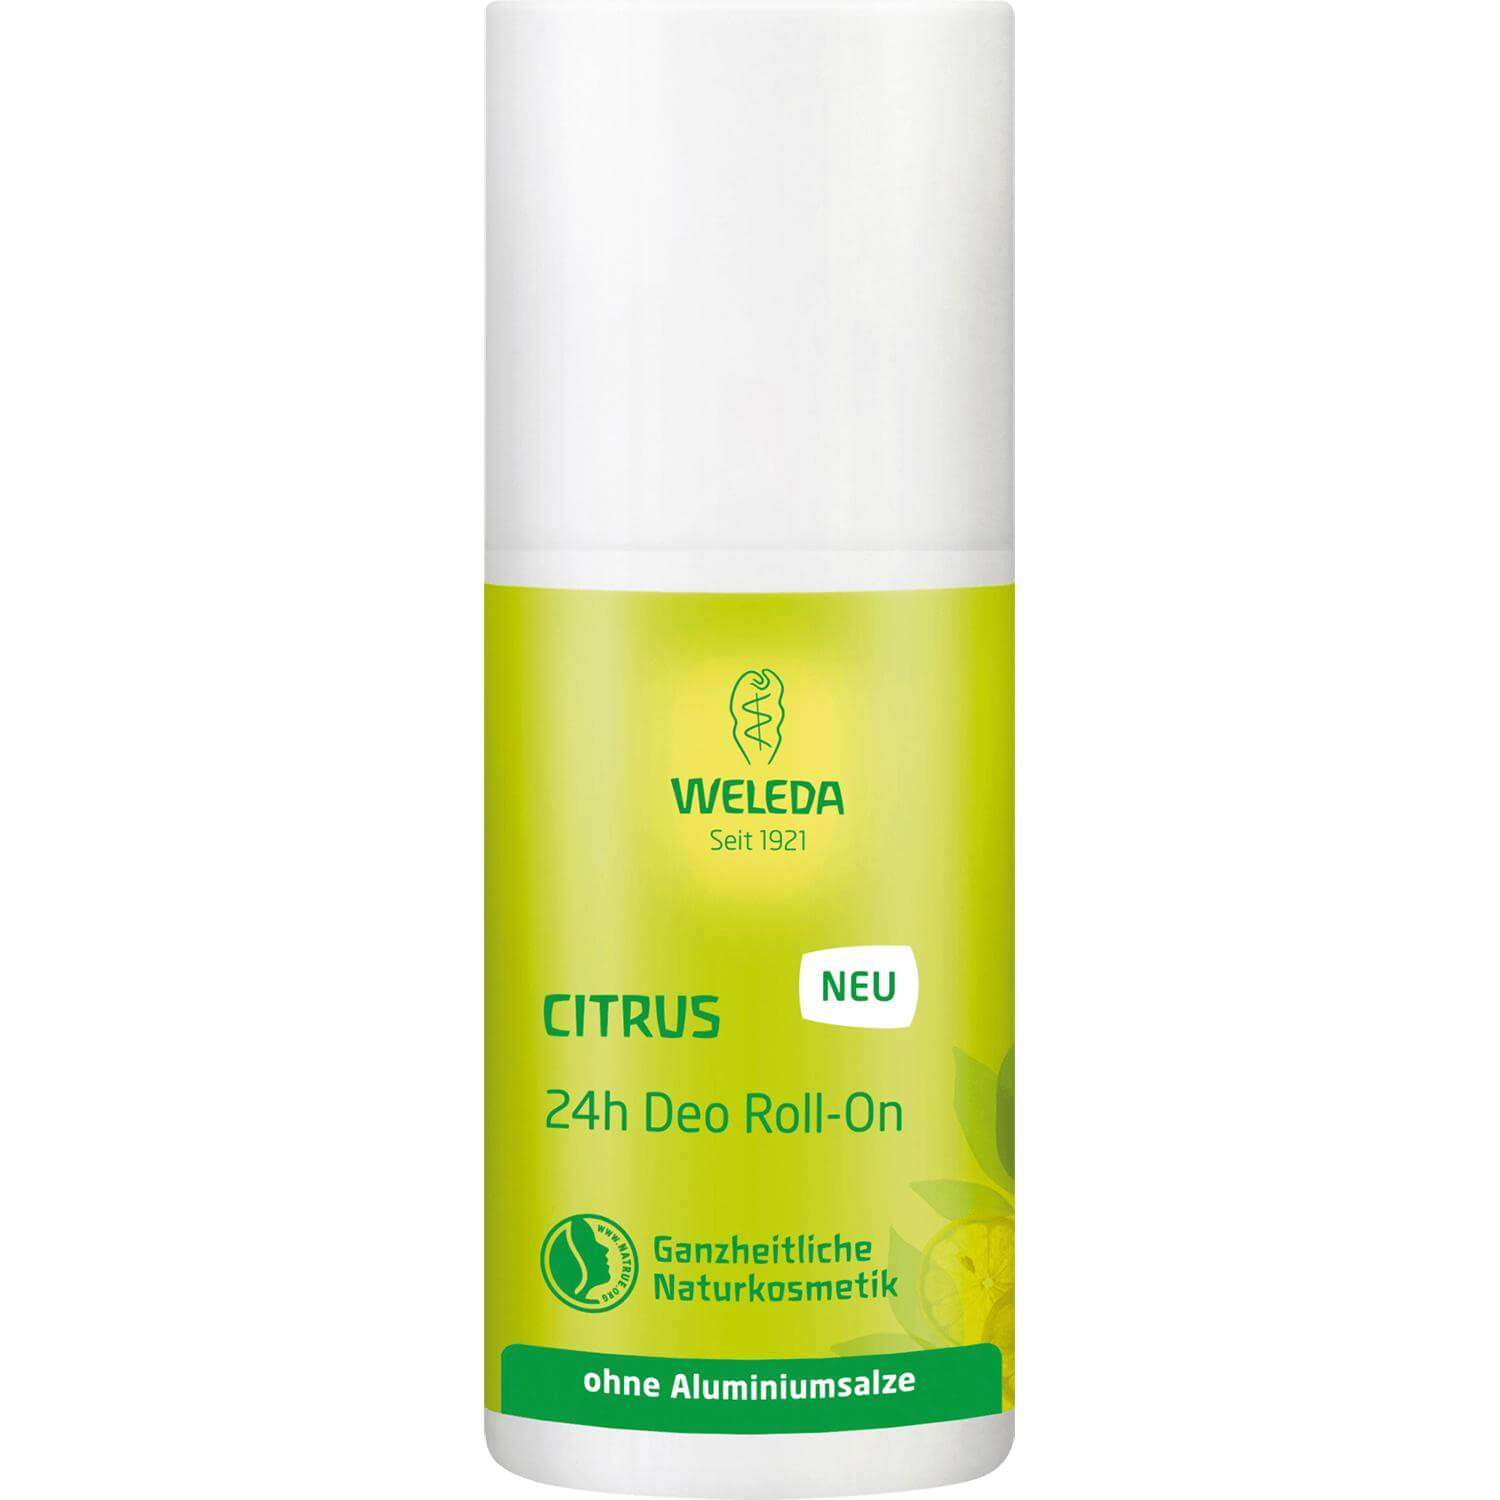 Weleda Citrus 24h Deo Roll-On Αποσμητικό Roll-On 24ωρης Προστασίας και Φυσικής Φρεσκάδας με Κίτρο 50ml